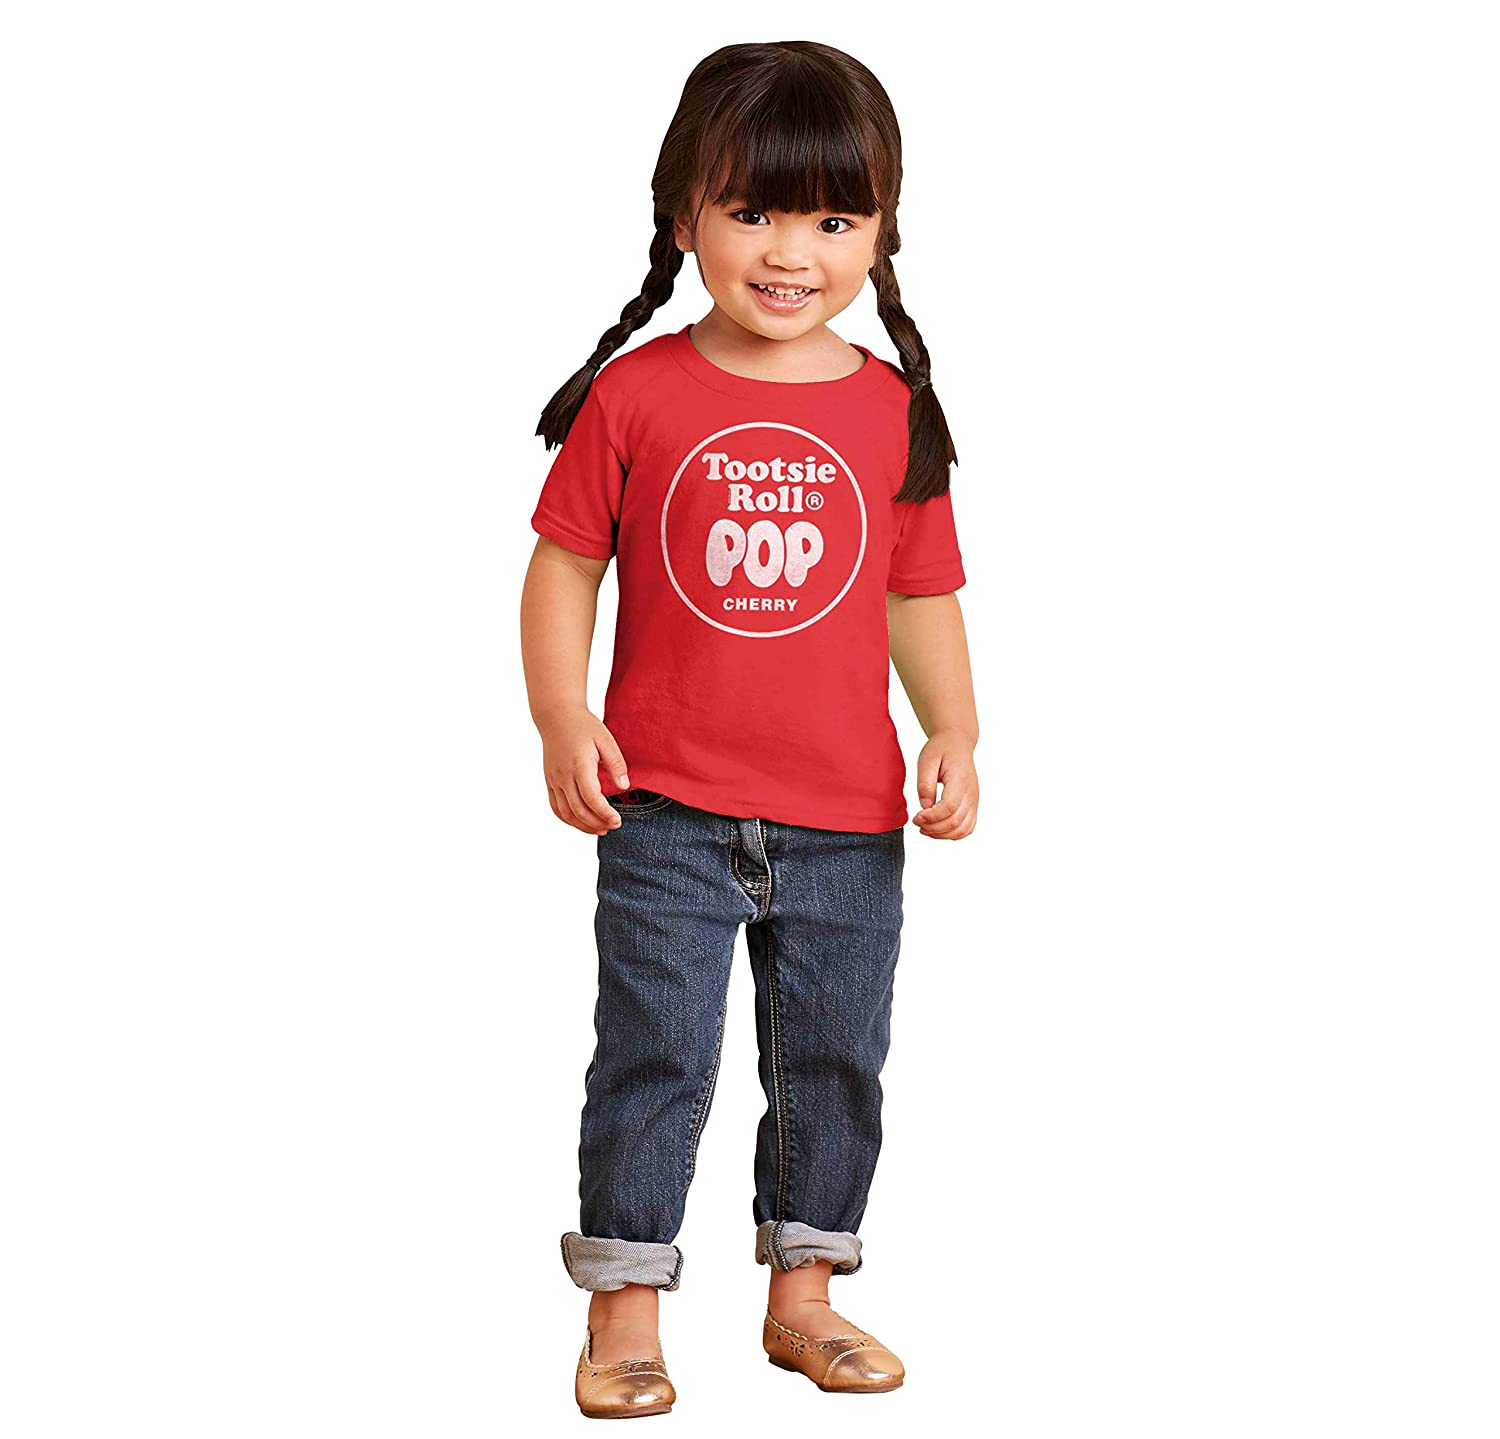 Flavored Vintage Cherry Tootsie Roll Pop Infant Toddler T Shirt